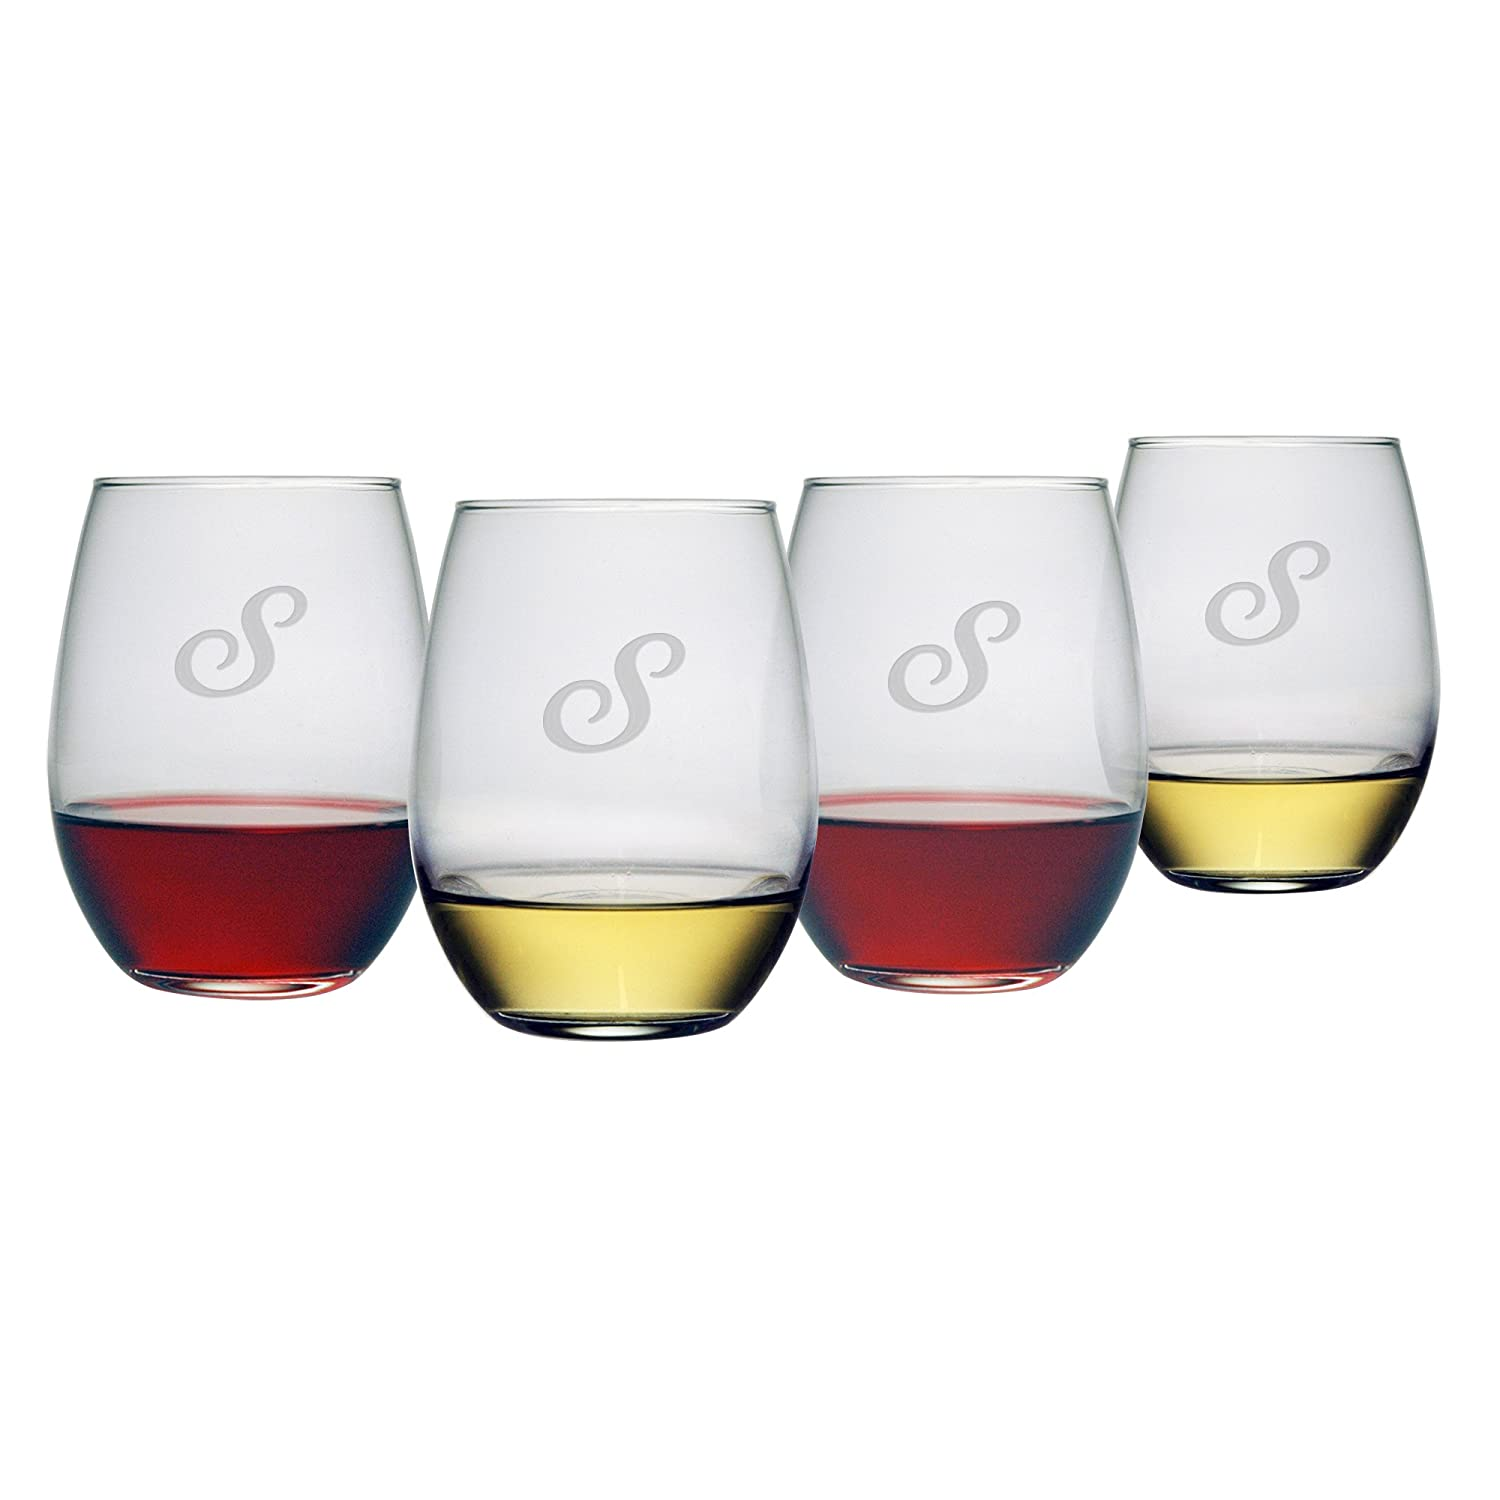 904d7a67ea8 Amazon.com   Susquehanna Glass Monogrammed Stemless Wine Glasses, 21-Ounce,  Initial S, Set of 4: Wine Glasses